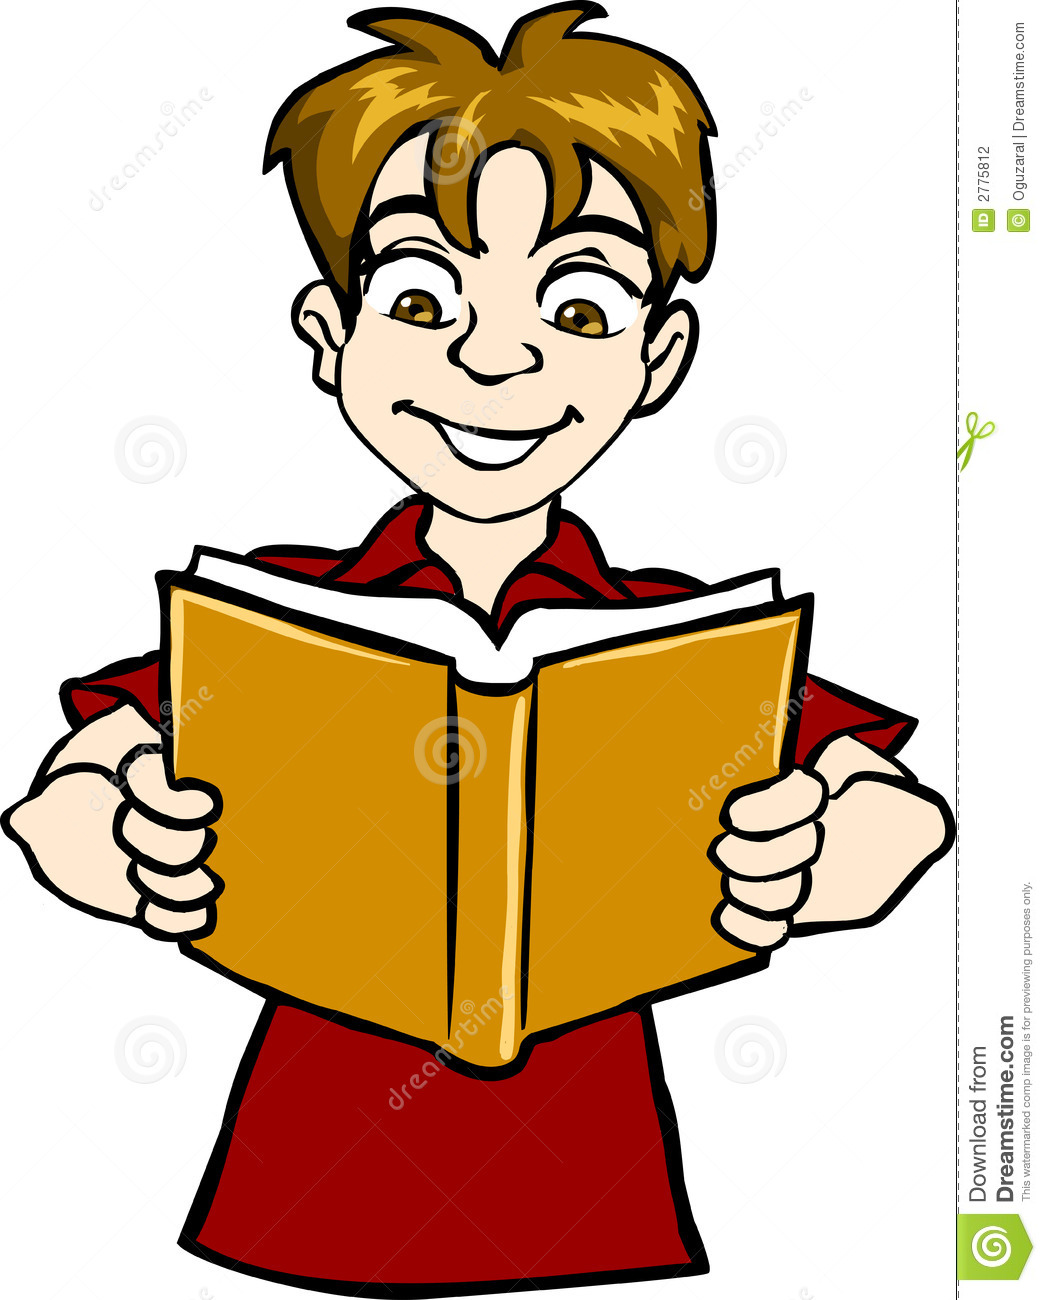 ... clipart read a book clipart black and white kid reading a book read